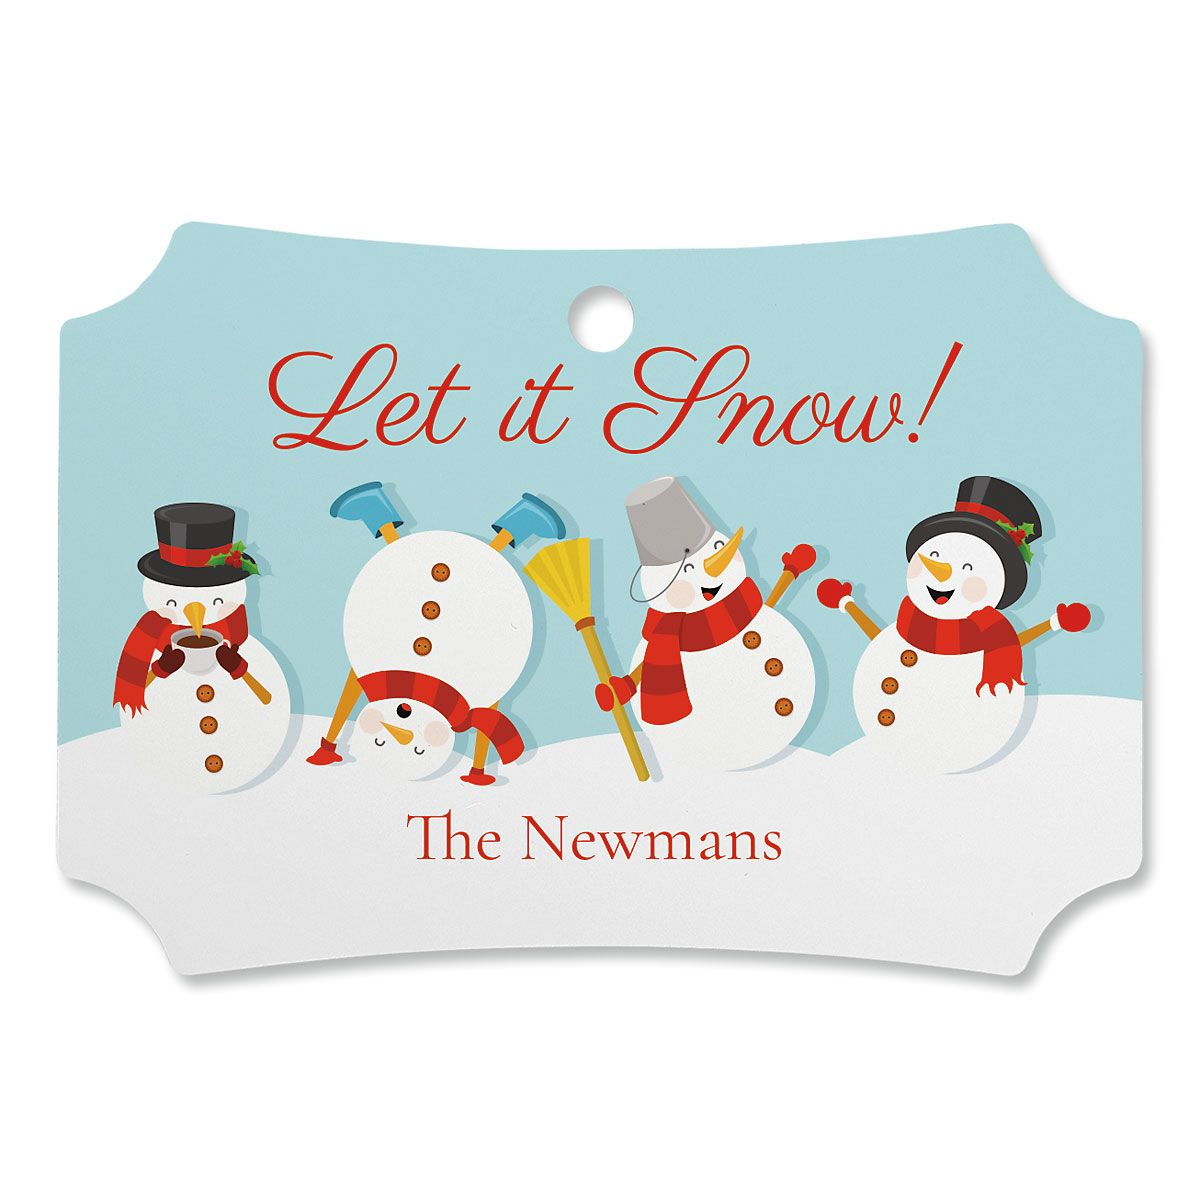 Let It Snow Personalized Ornament Deluxe